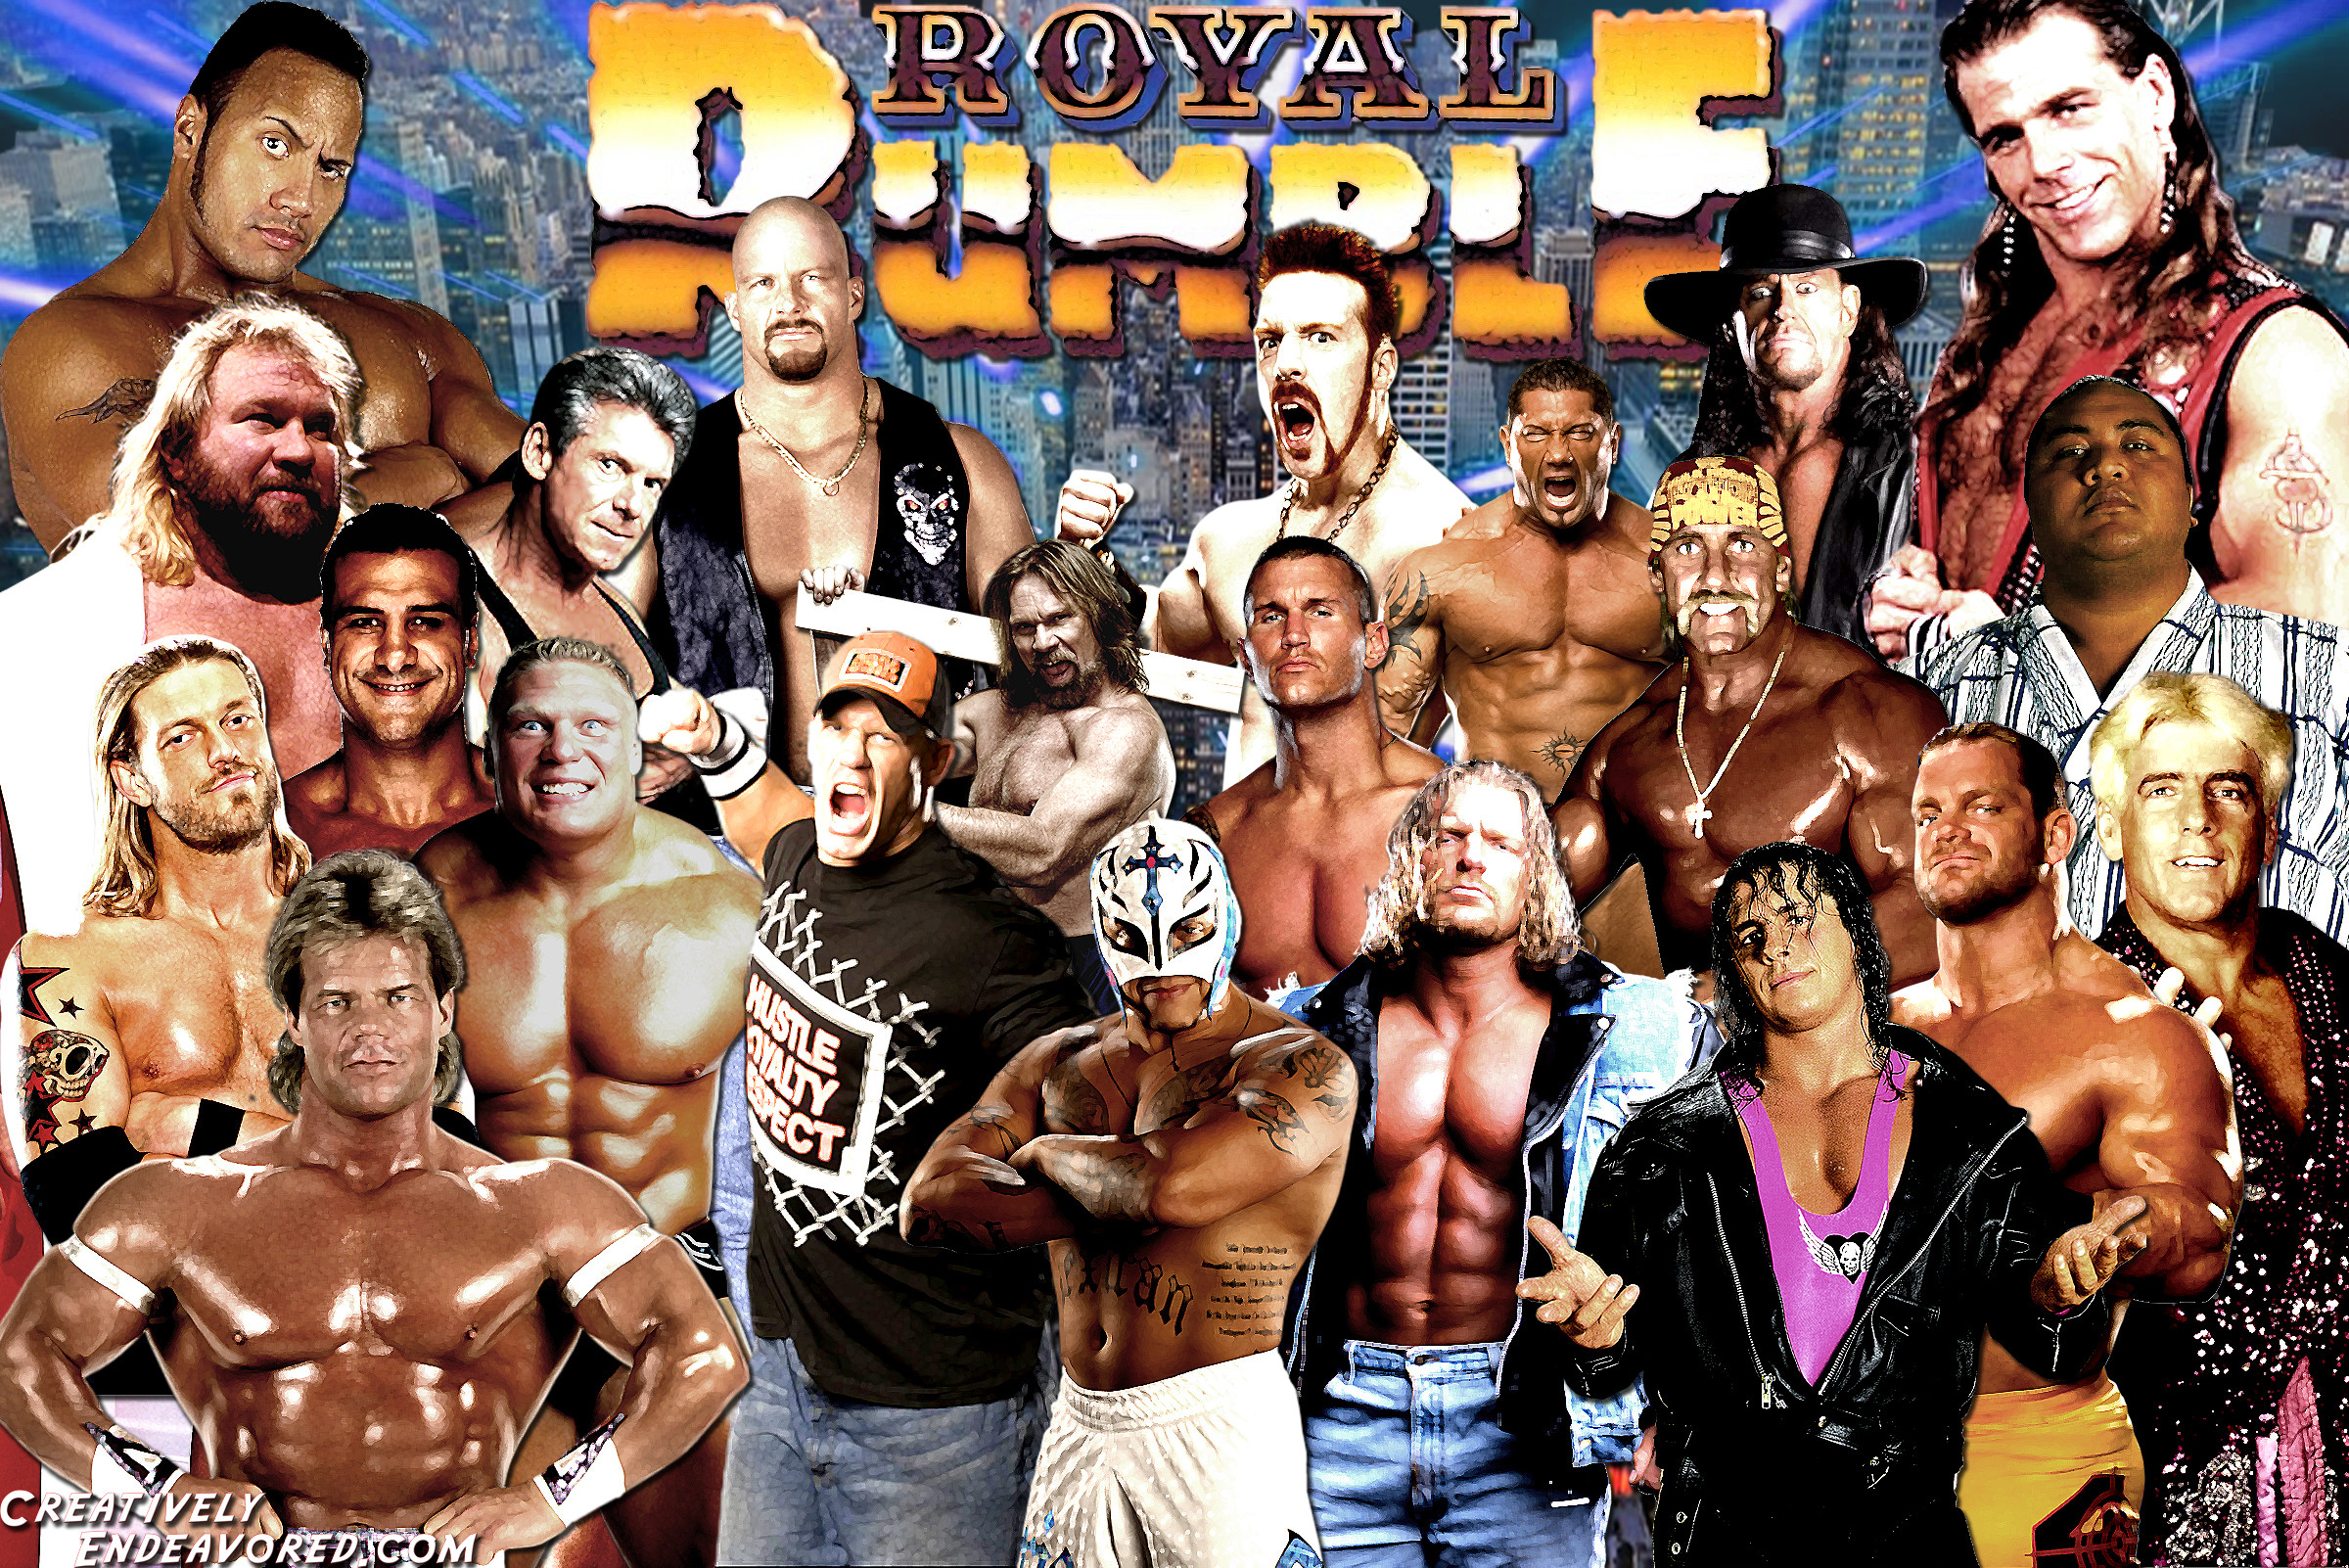 2400x1602 ... WWE Royal Rumble Wrestling Poster Posters Wallpaper | 2400X1602 ...